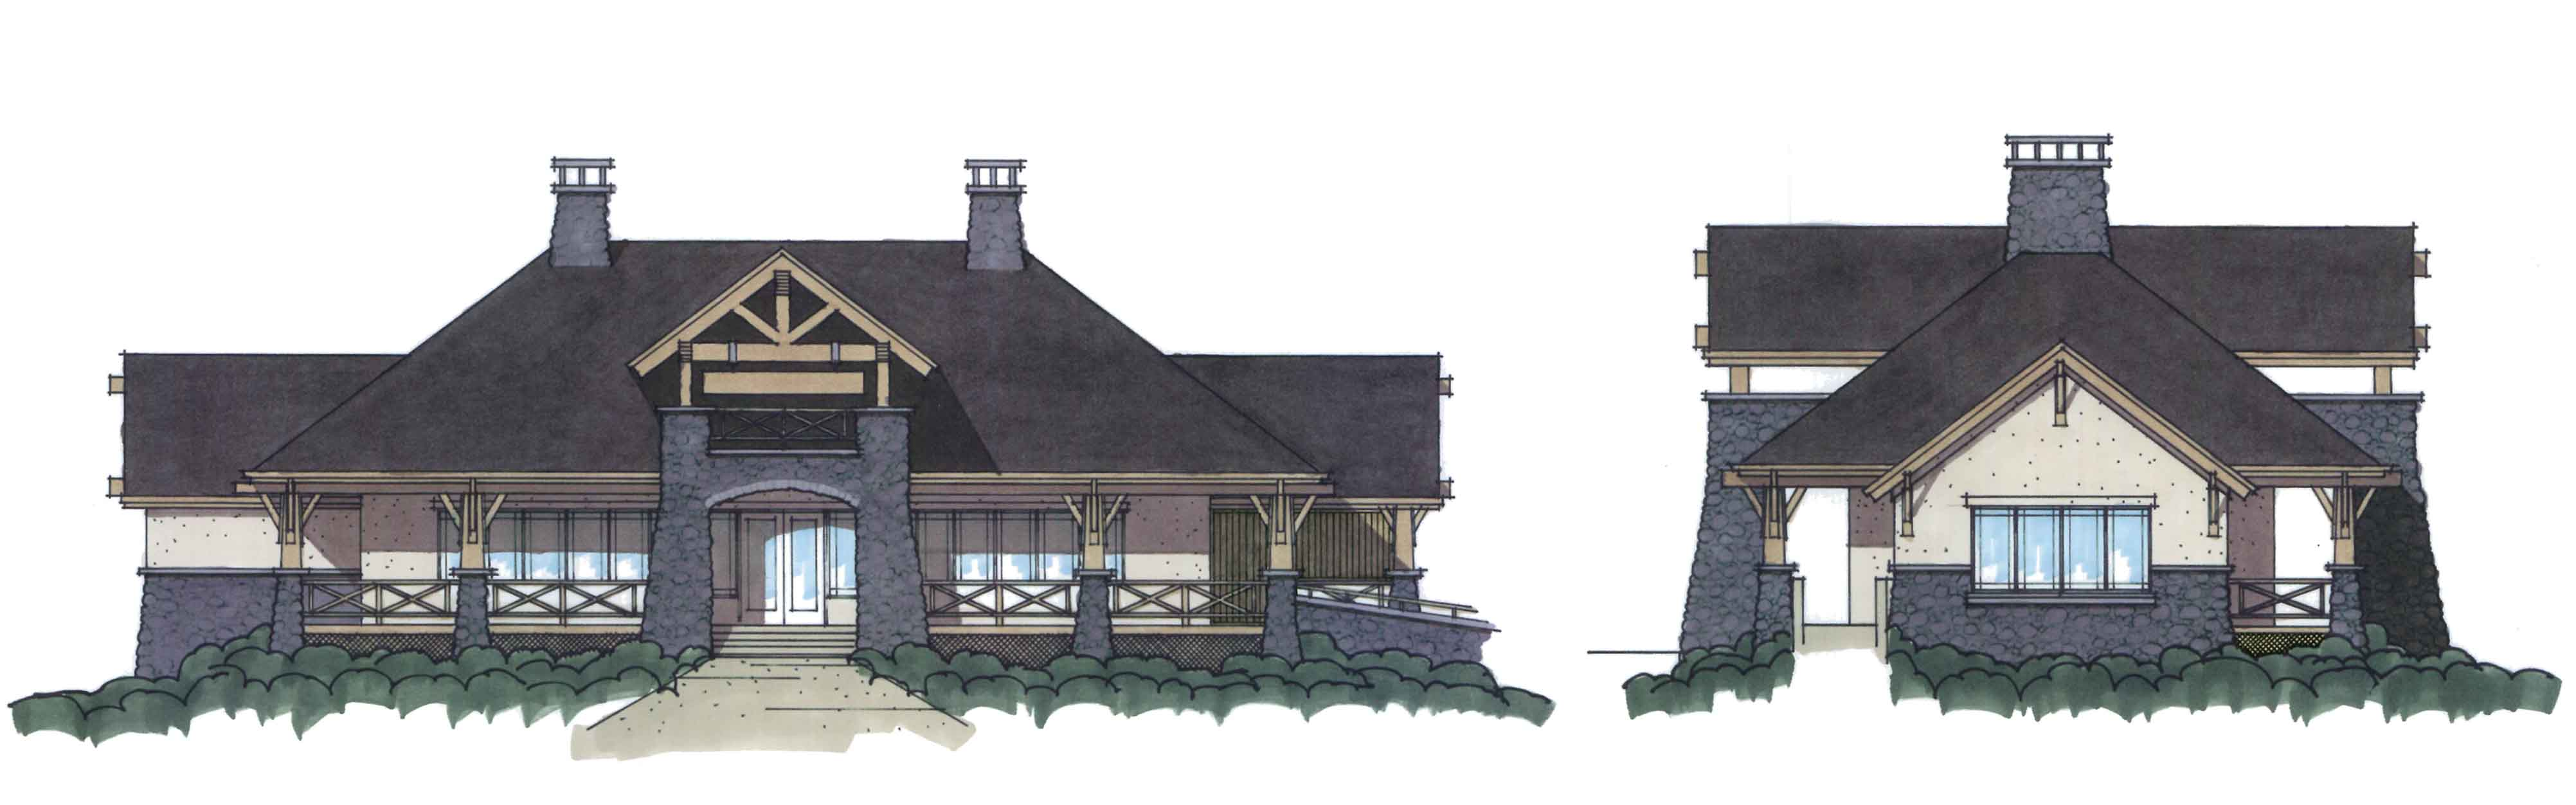 Pool house architecture design in denver colorado for Clubhouse architecture design